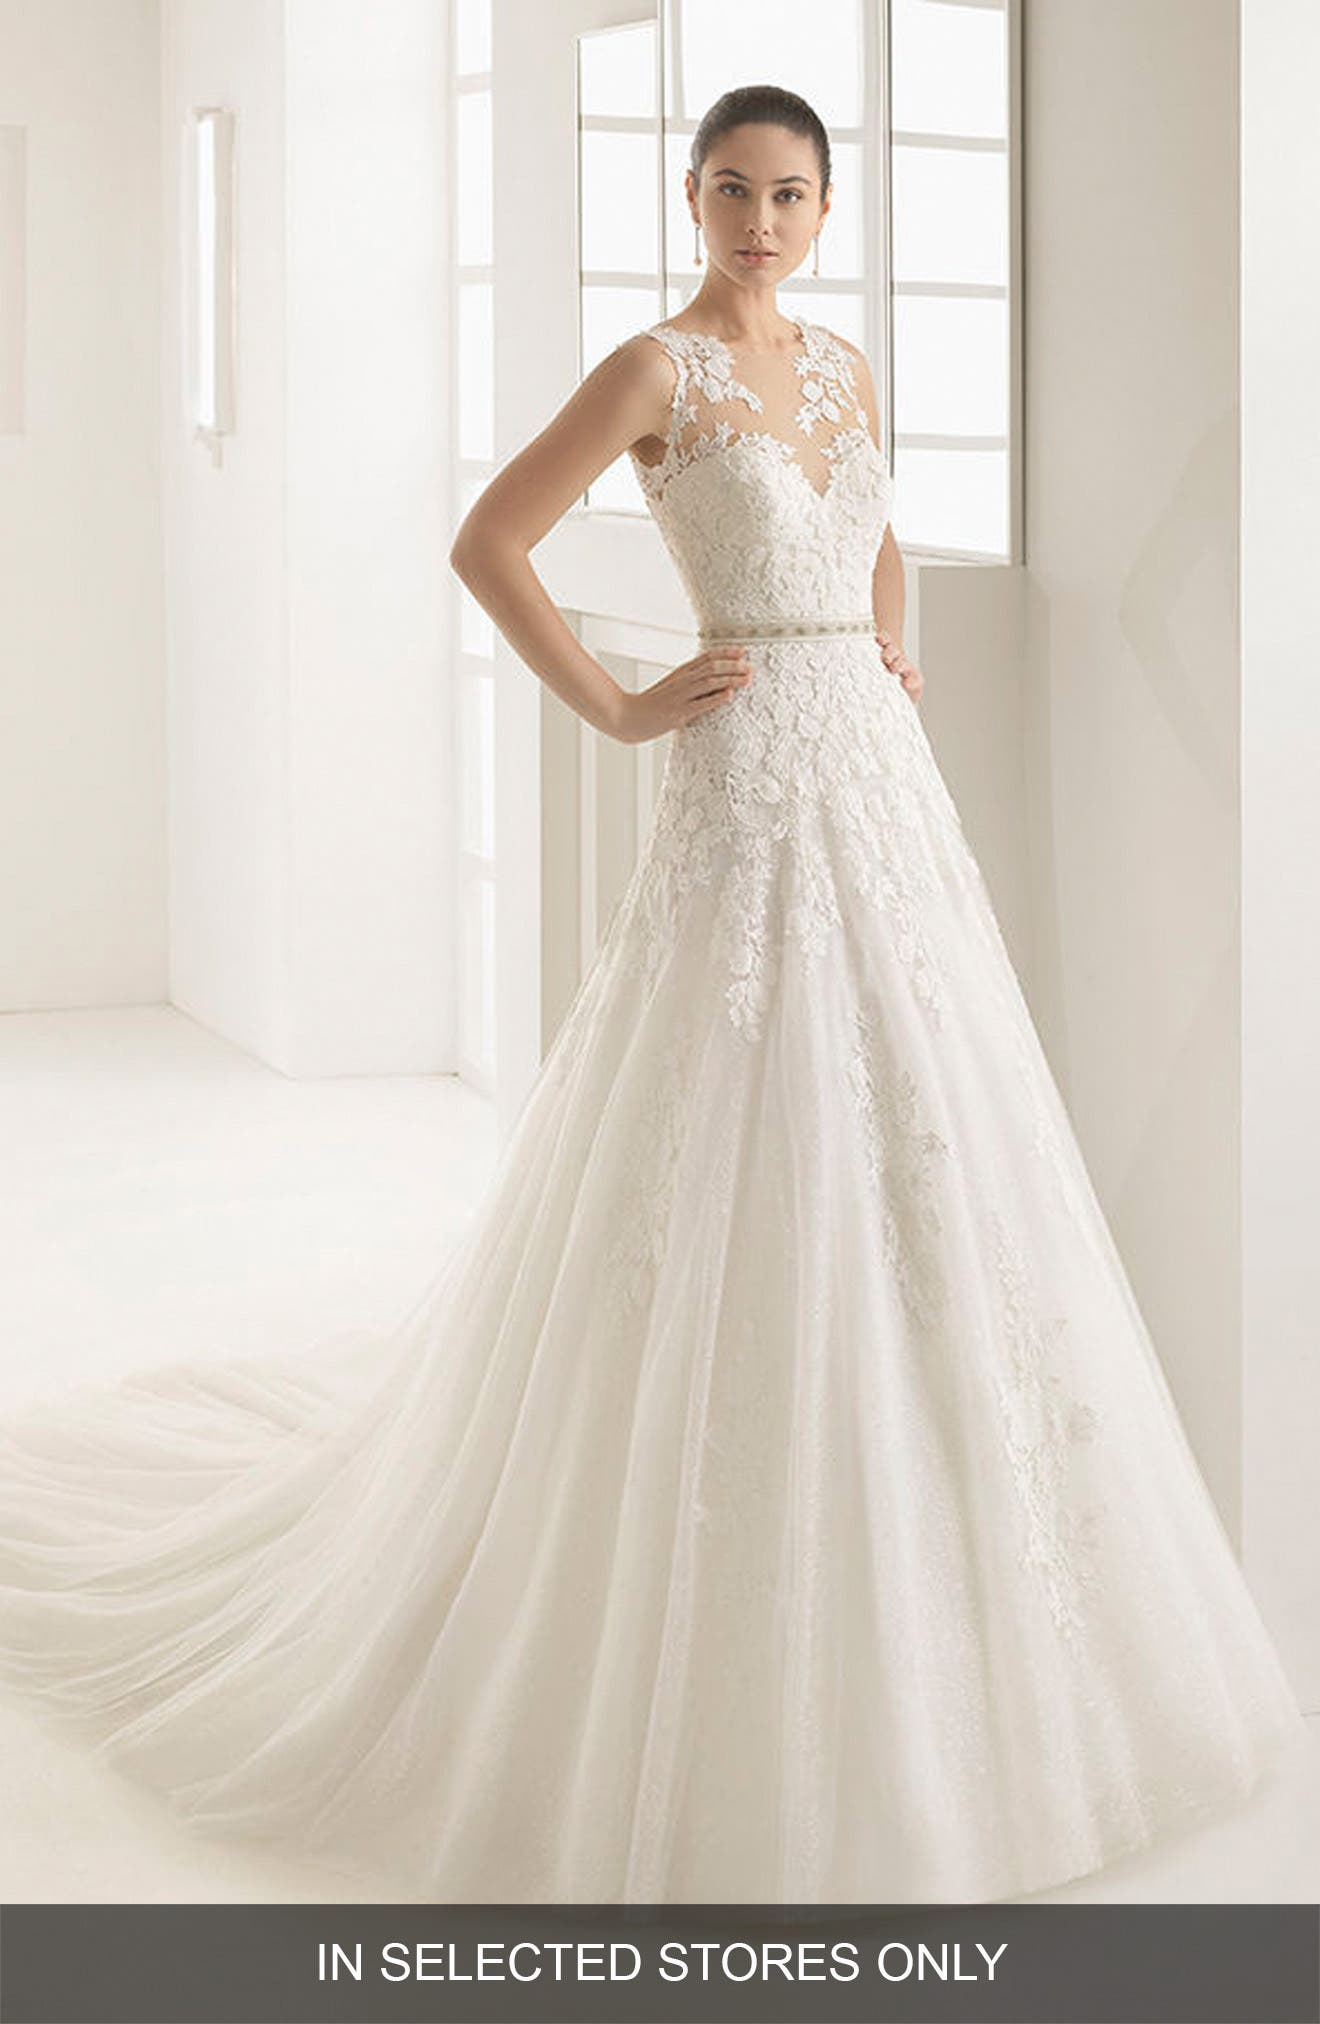 Oda Sleeveless Lace & Tulle Gown,                             Main thumbnail 1, color,                             Natural